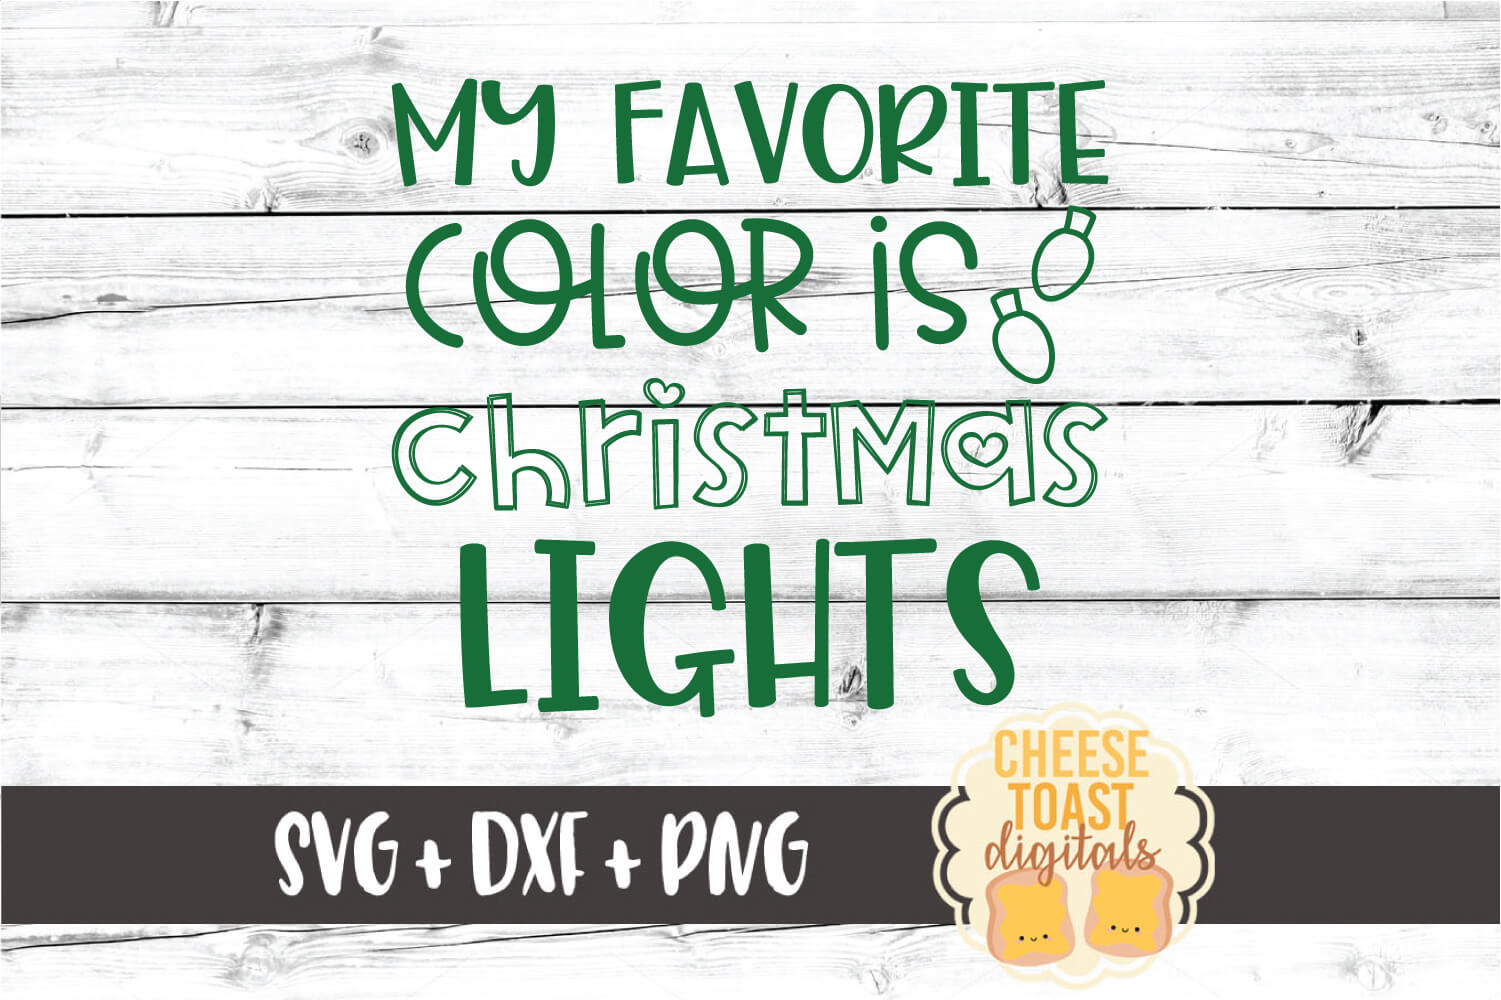 My Favorite Color Is Christmas Lights - SVG PNG DXF Files example image 2